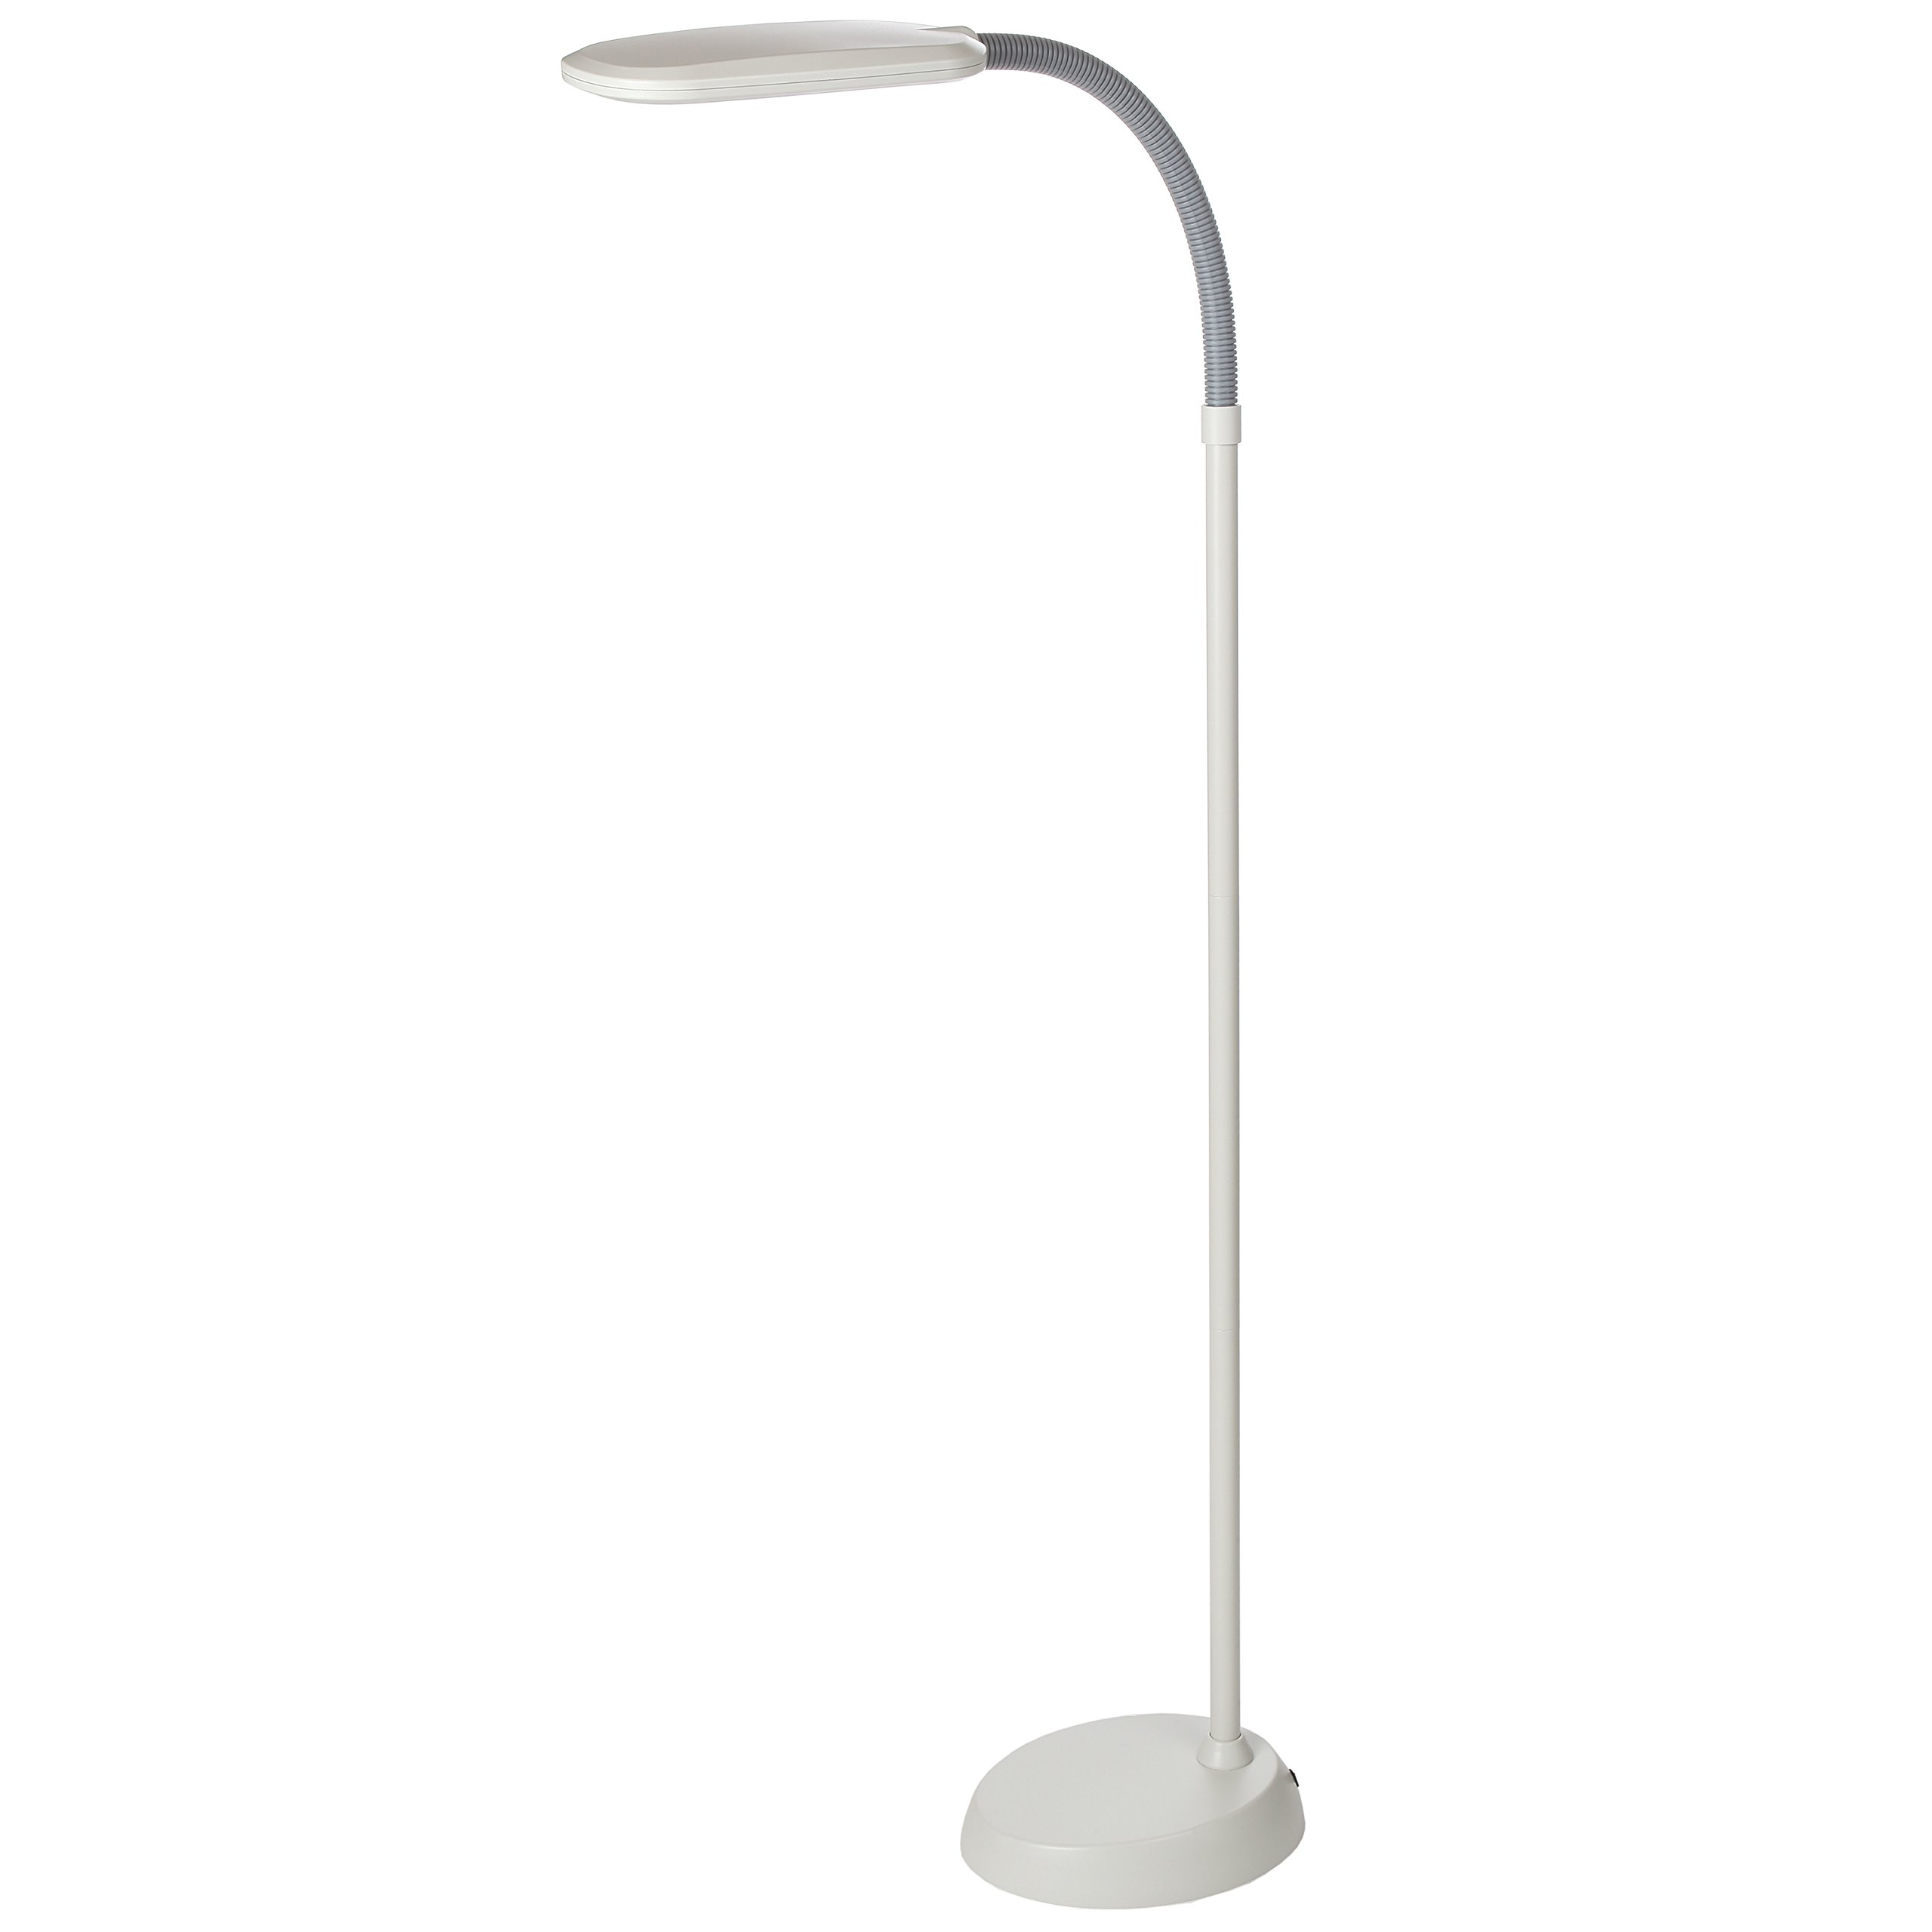 Brightech Litespan 2nd Edition LED Reading & Craft Floor Lamp - Dimmable & Light Color Adjustable with Touch Switch - Standing Tall Pole Task Lamp with Gooseneck for Office - Alpine White by Brightech (Image #3)